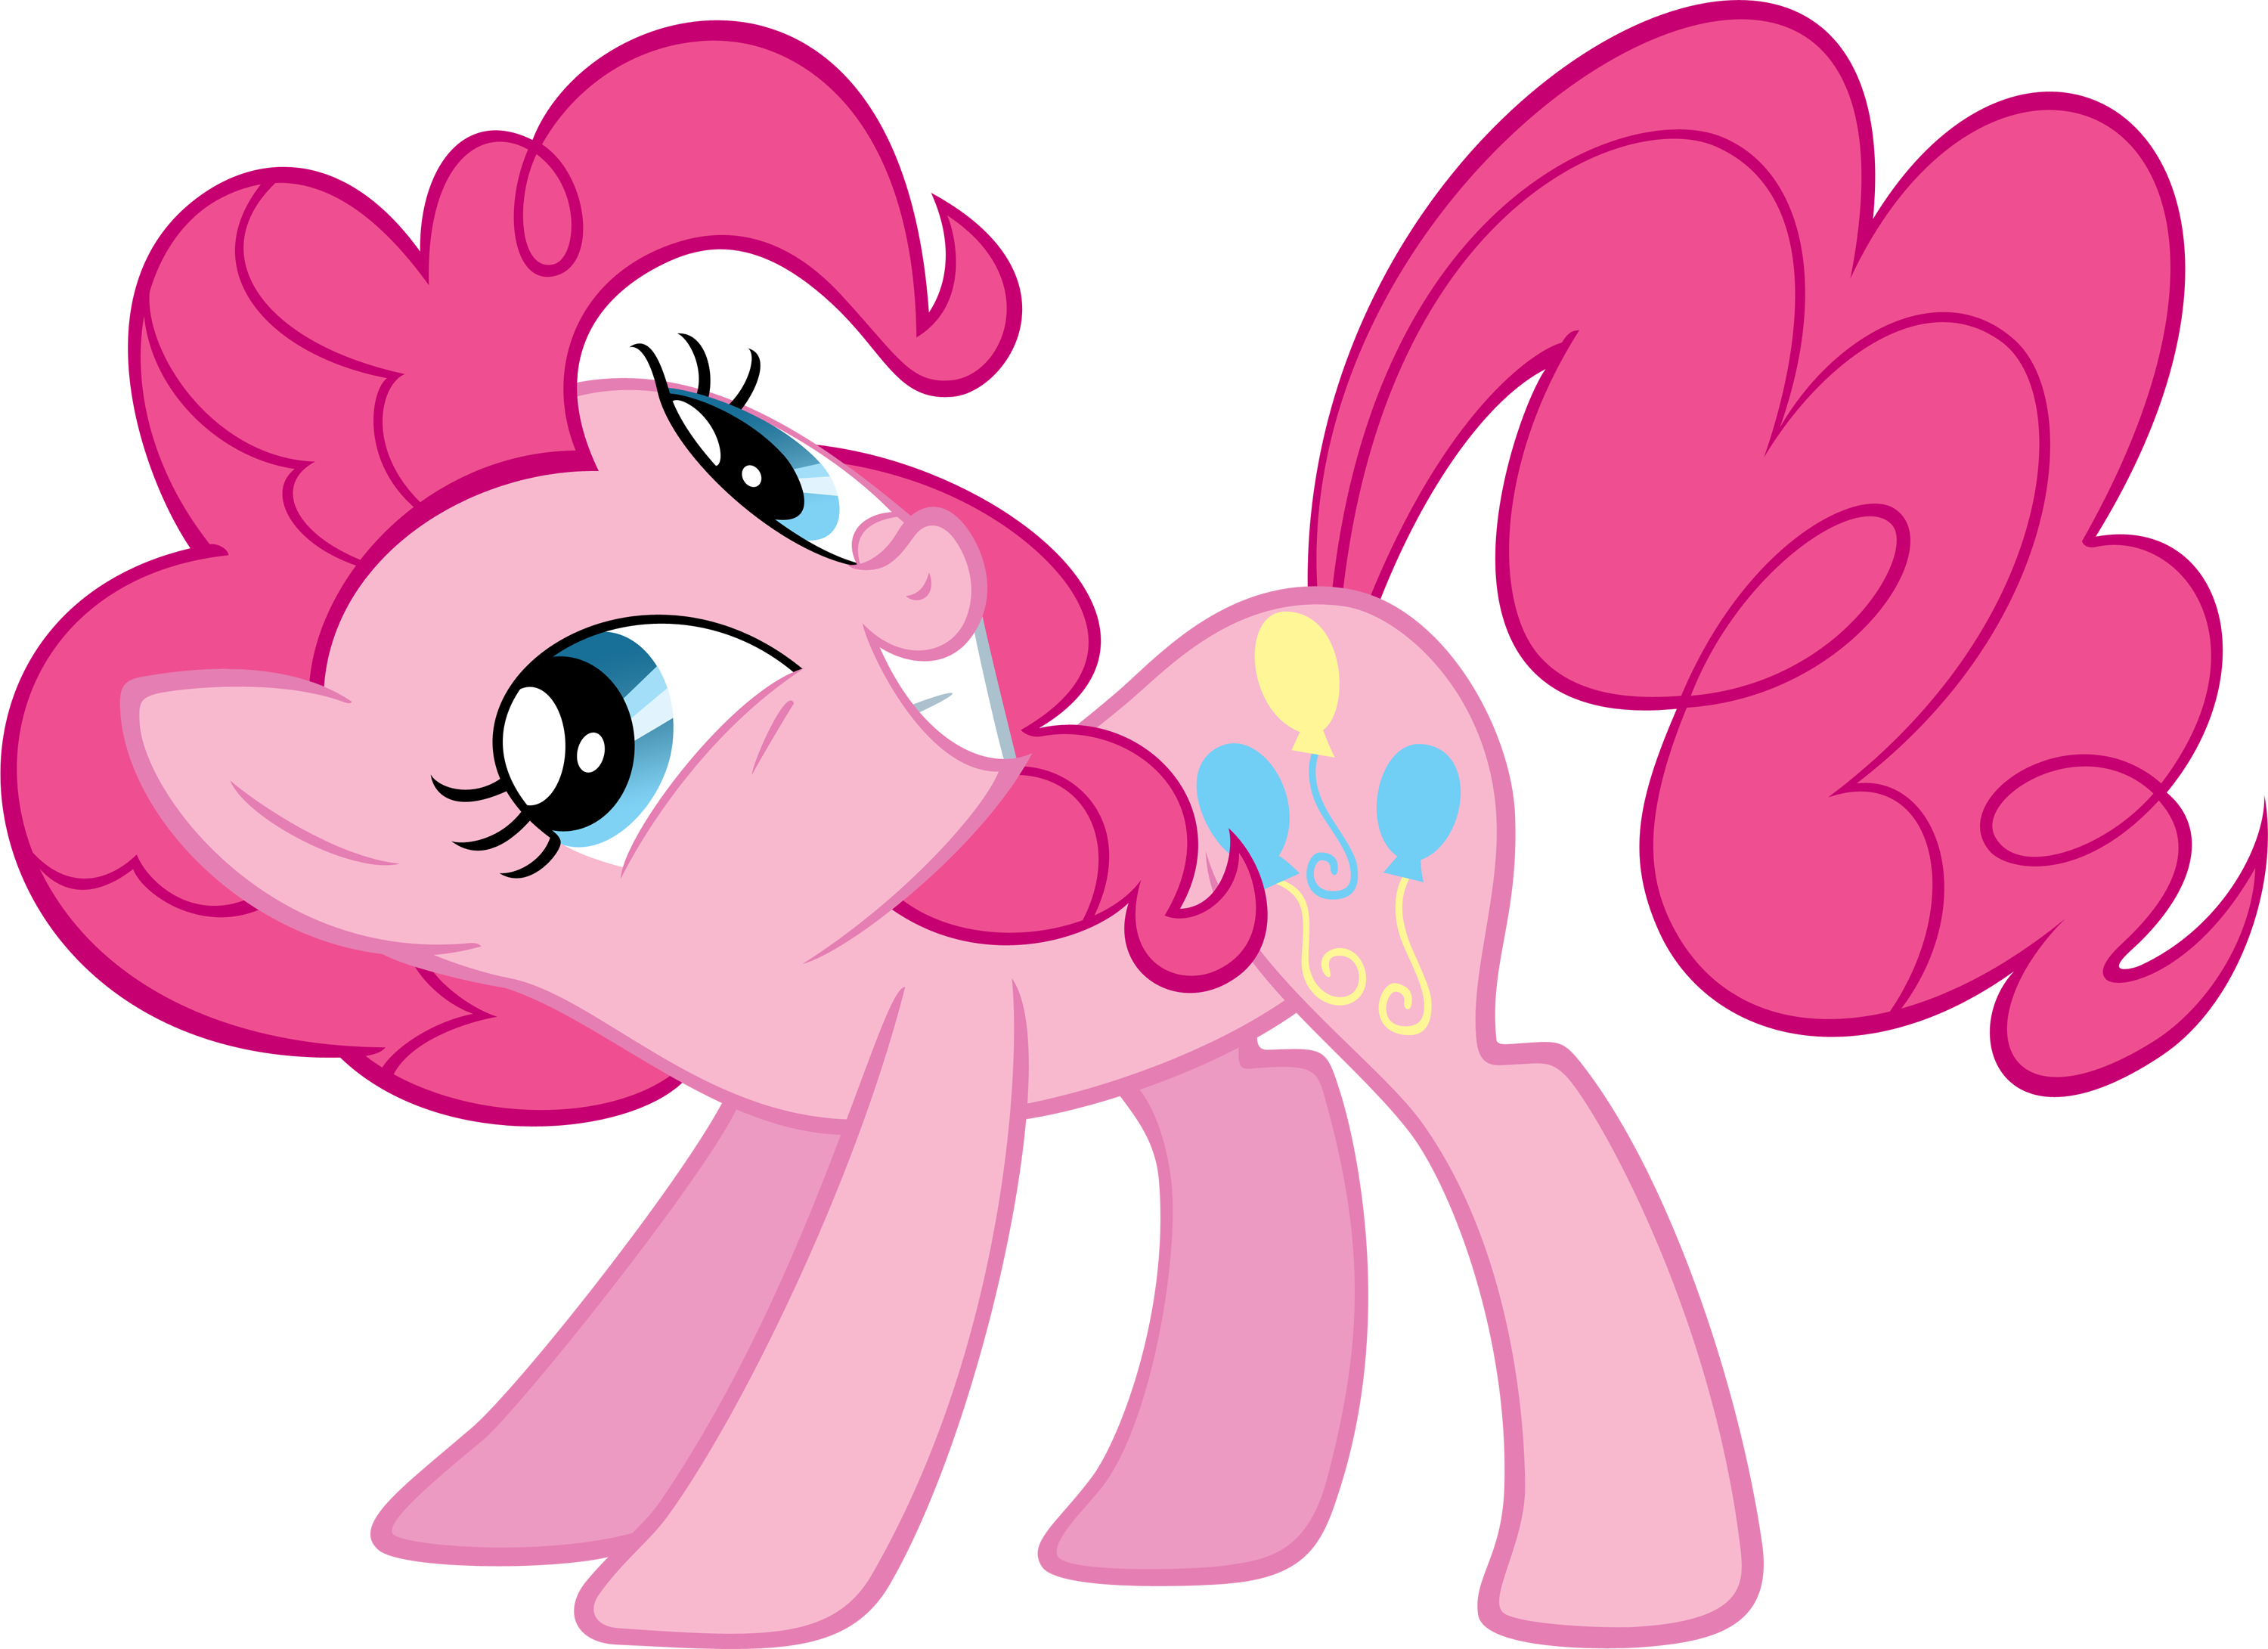 pinkie pie pinkie pie know your meme